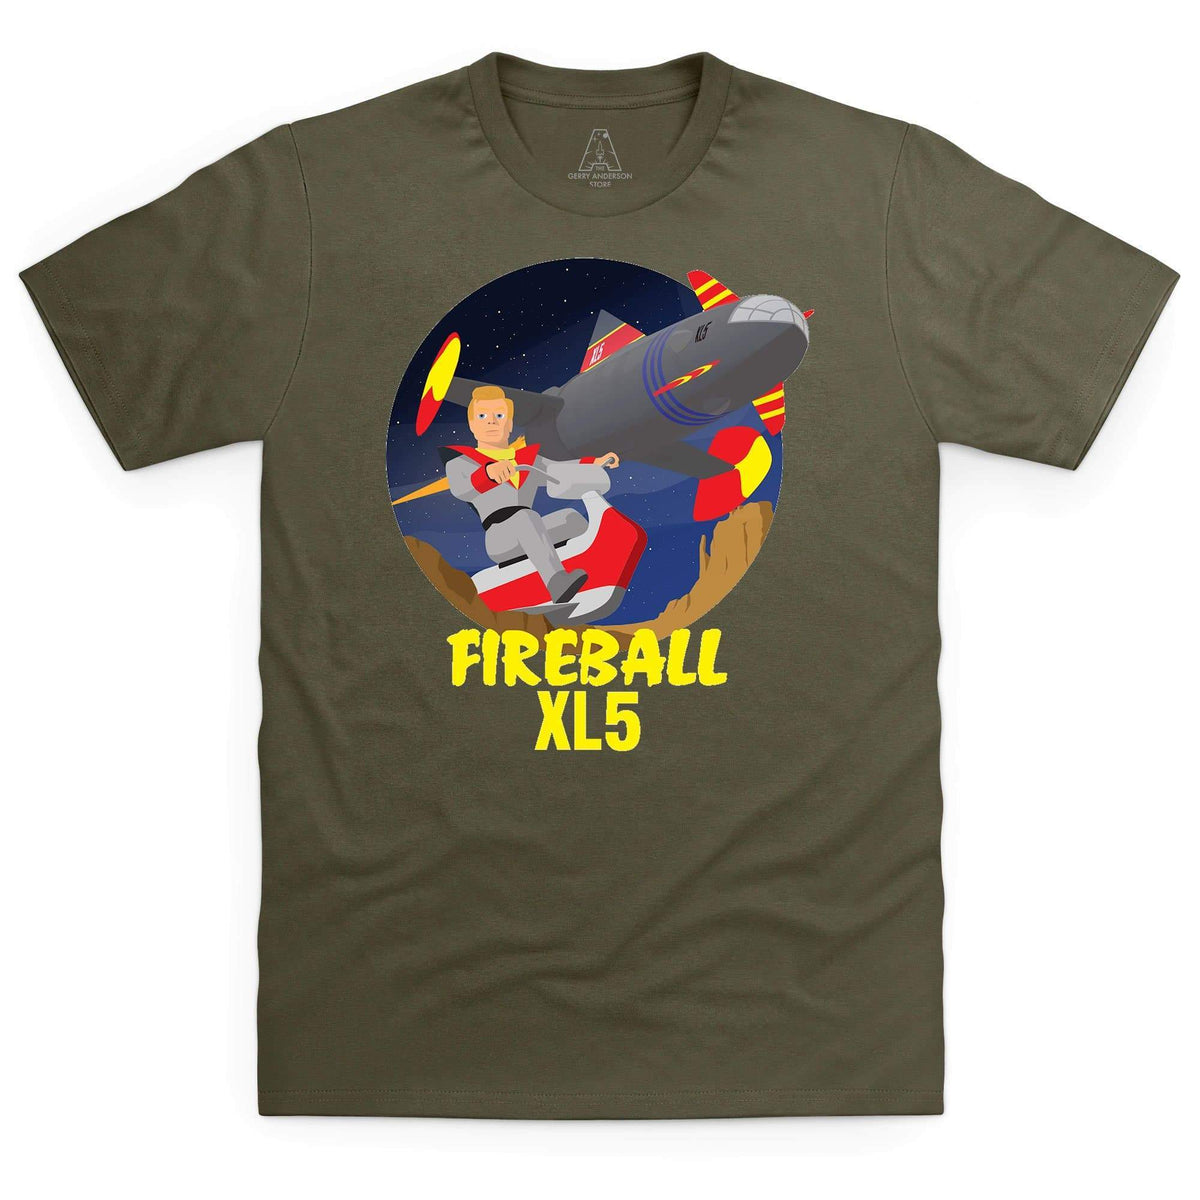 Fireball XL5 Men's T-Shirt [Official & Exclusive] - The Gerry Anderson Store